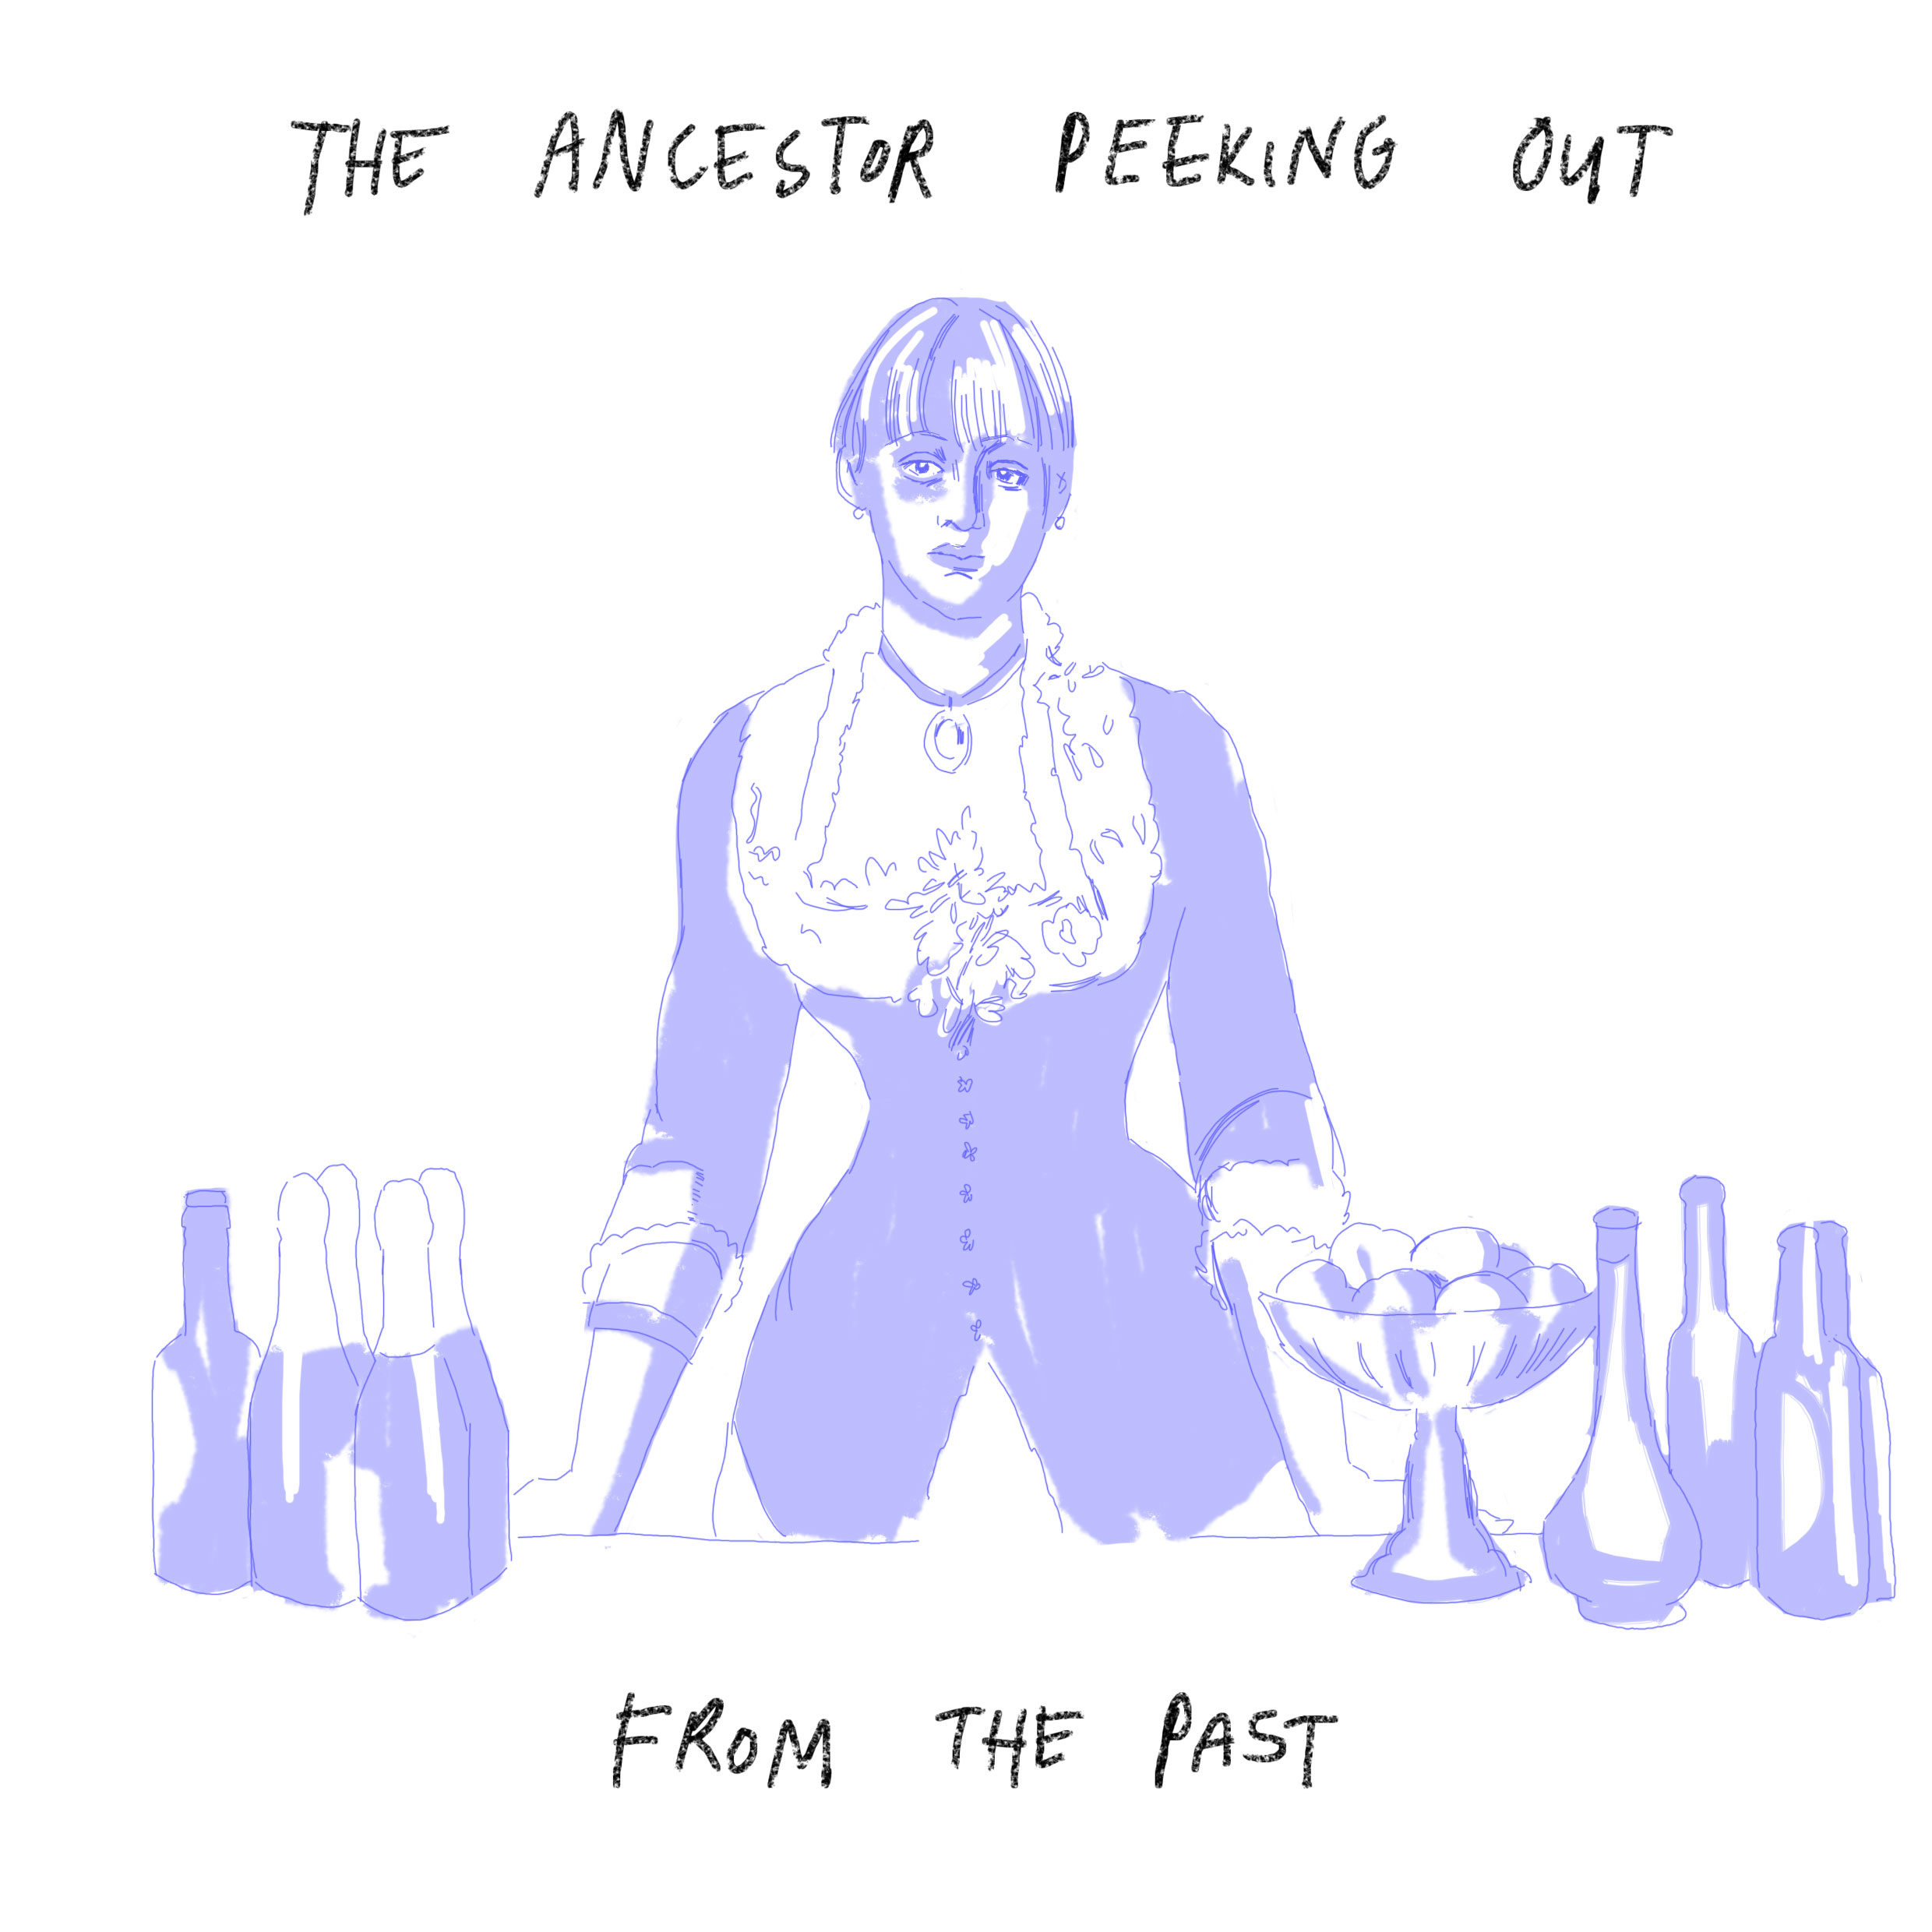 'The ancestor peeking out from the past'